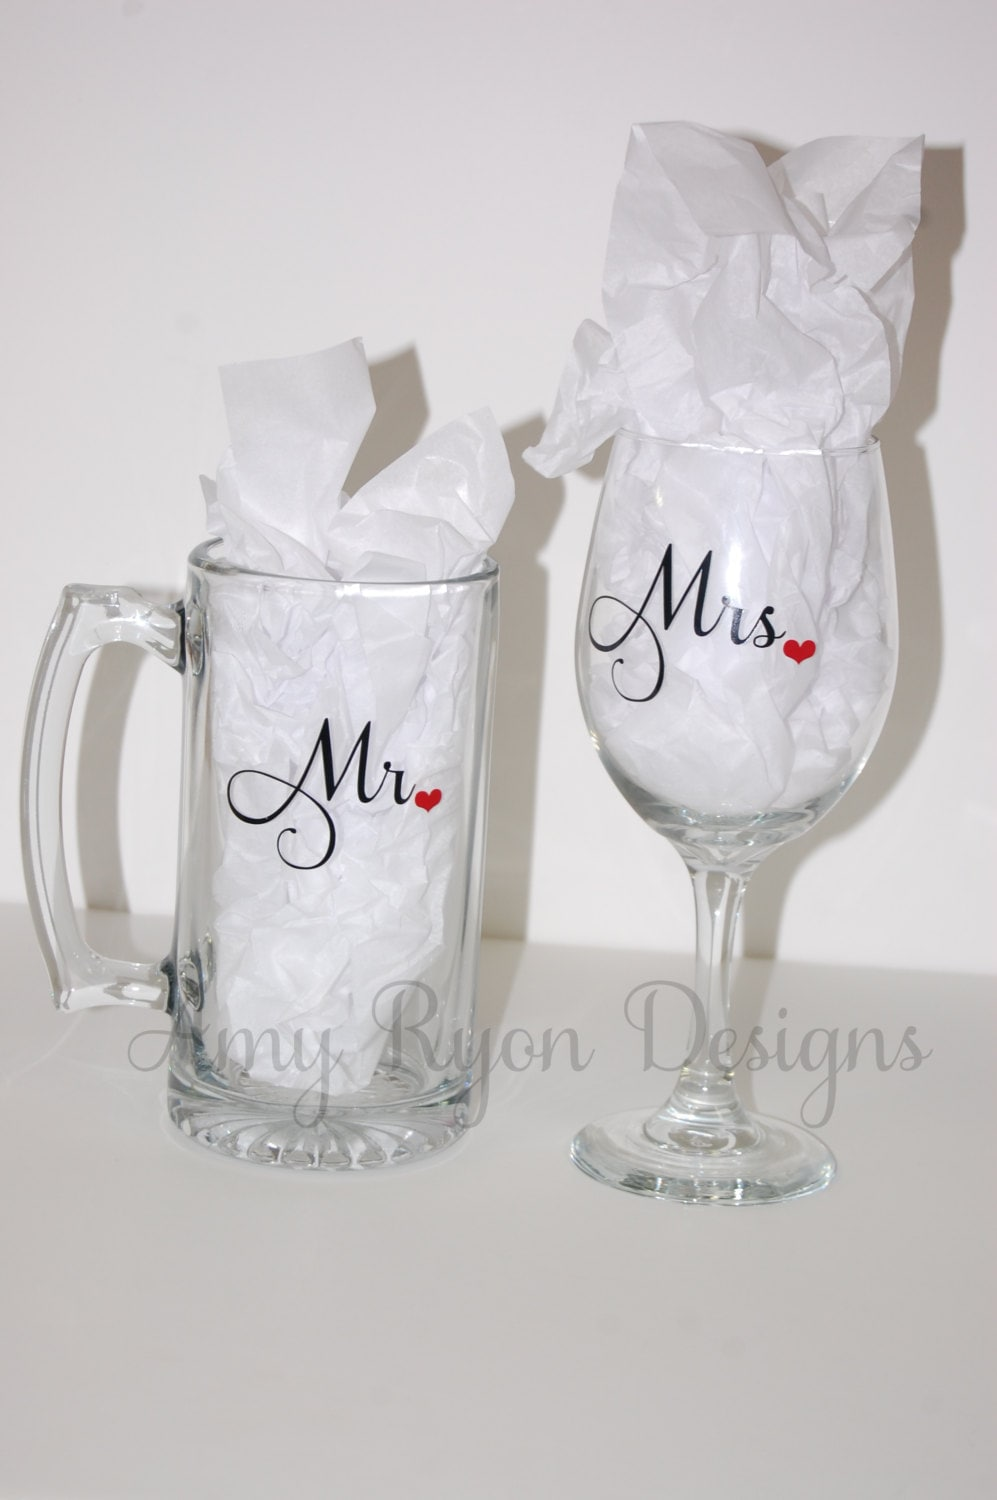 Mr. and Mrs. Beer and Wine Glasses His and Her Drinking